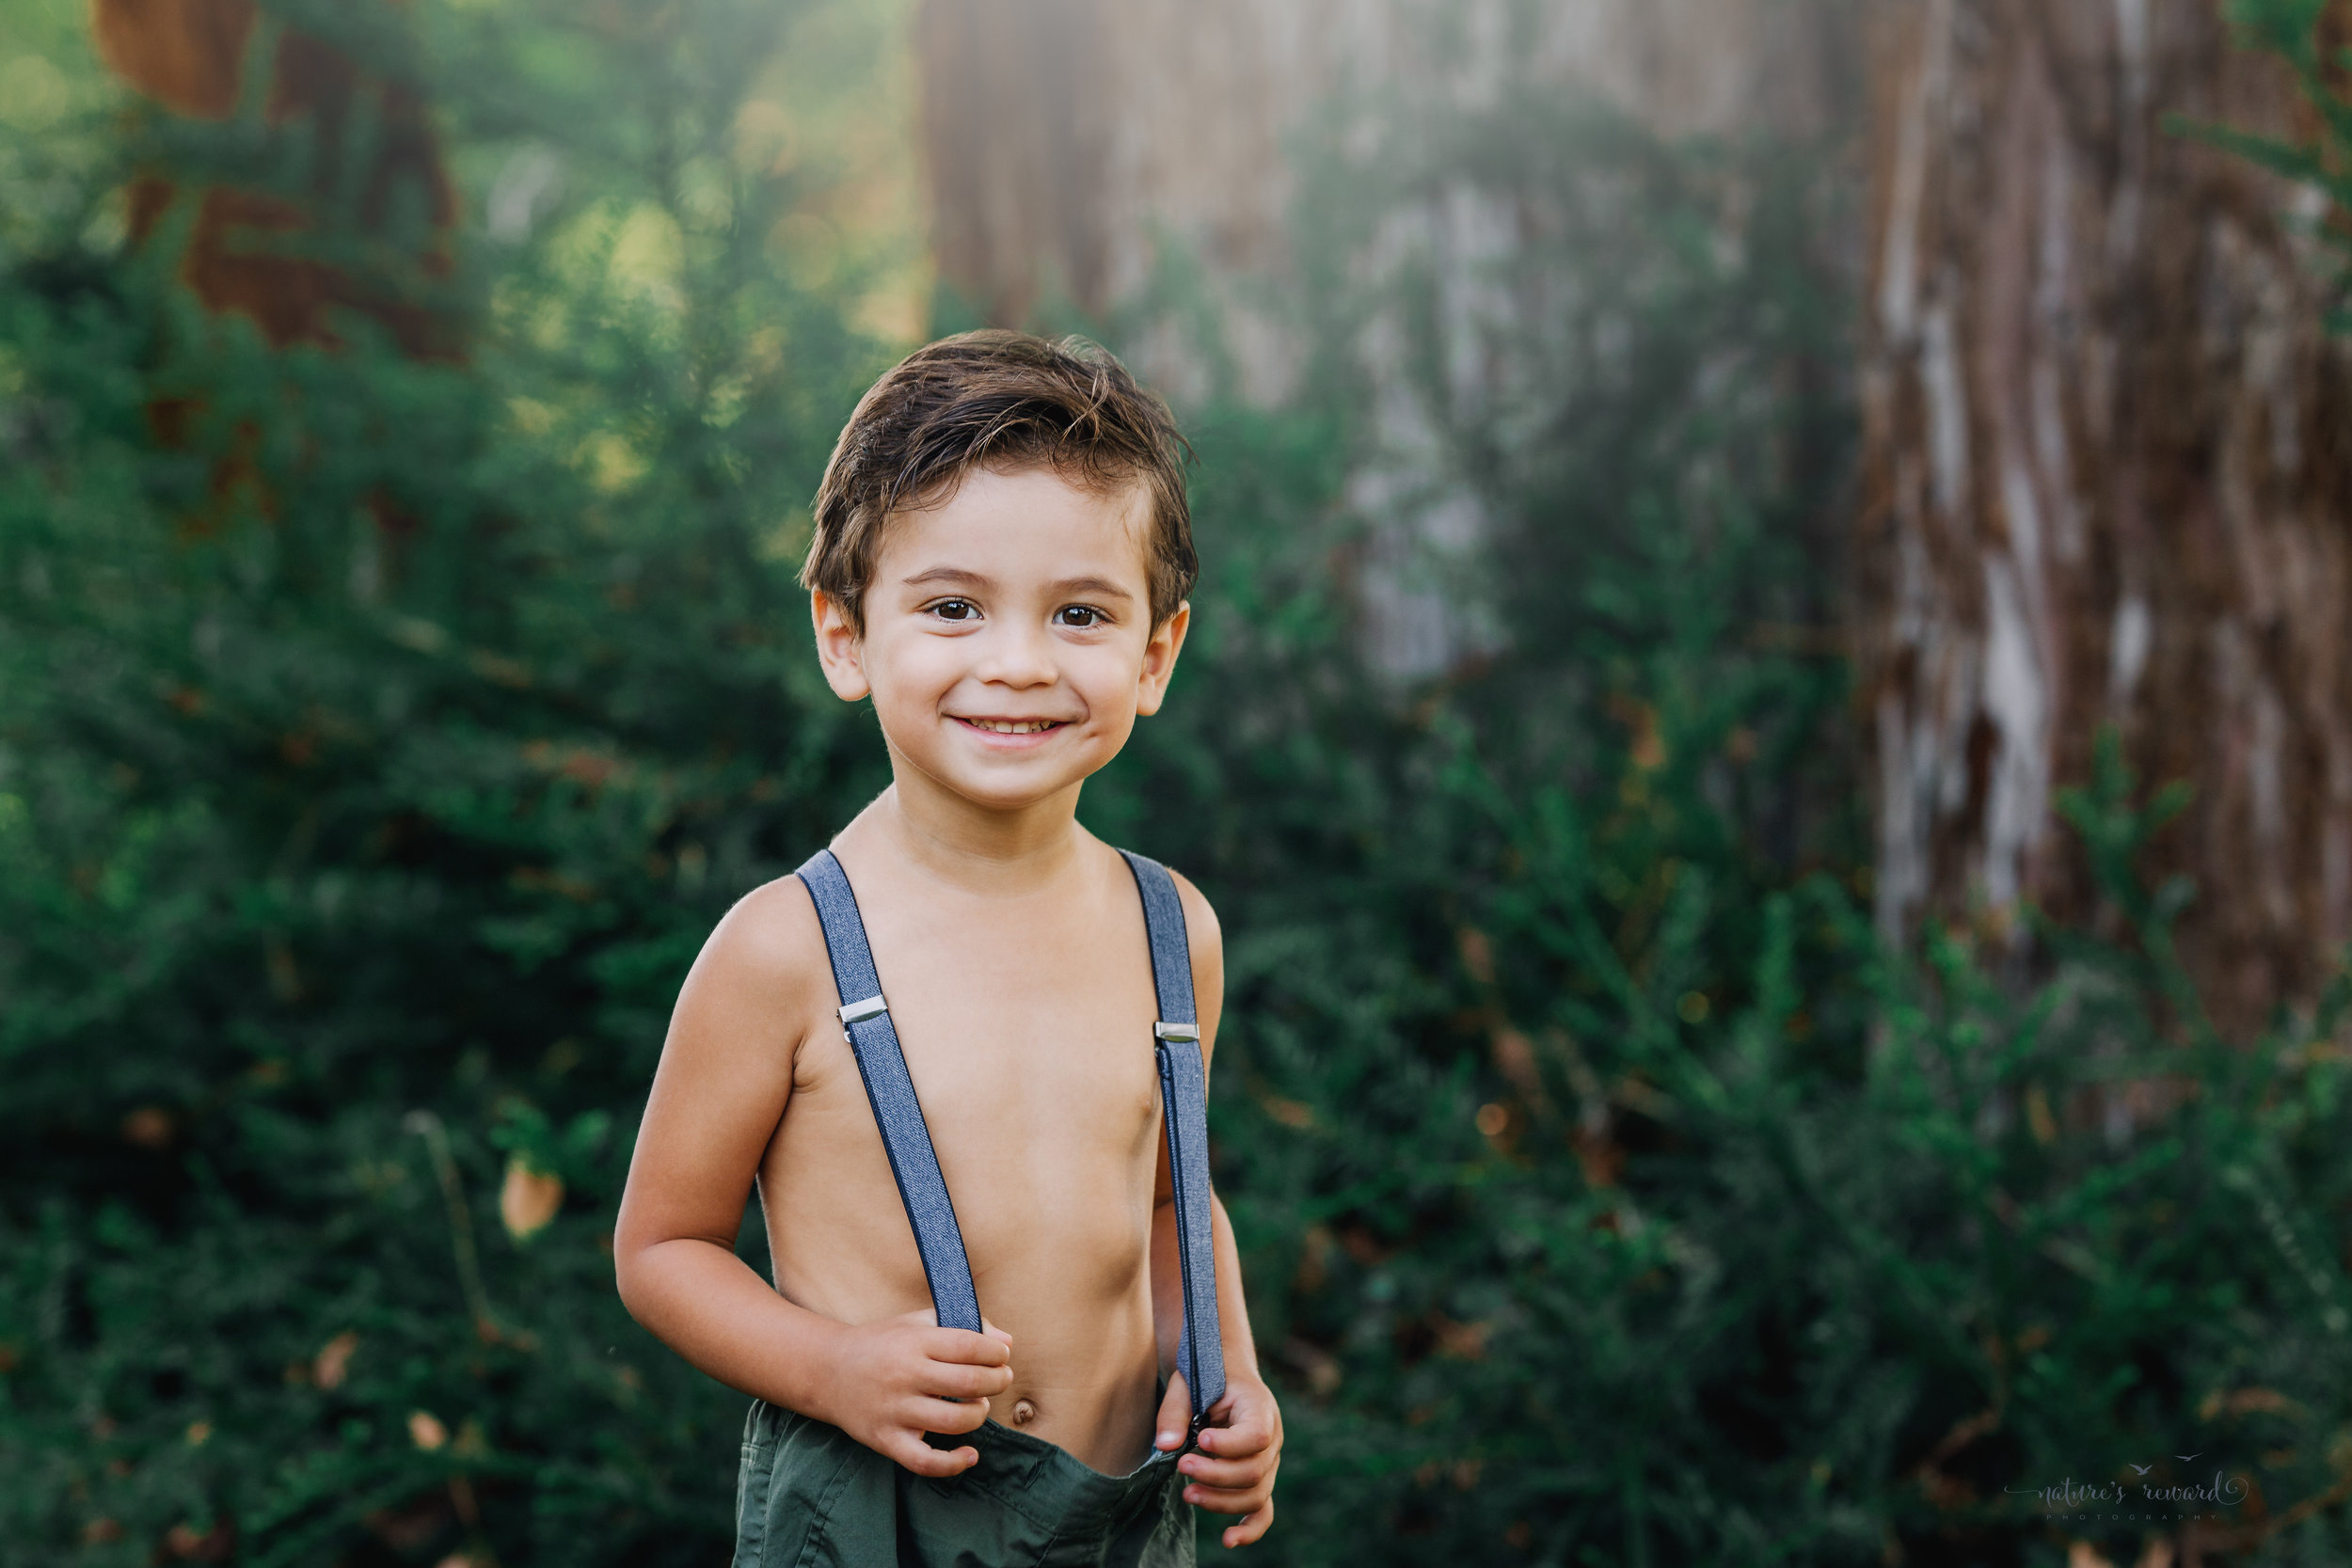 Beautiful toddler baby boy wearing the cutest pair of pants and suspenders in this vintage inspired portrait by Nature's Reward Photography